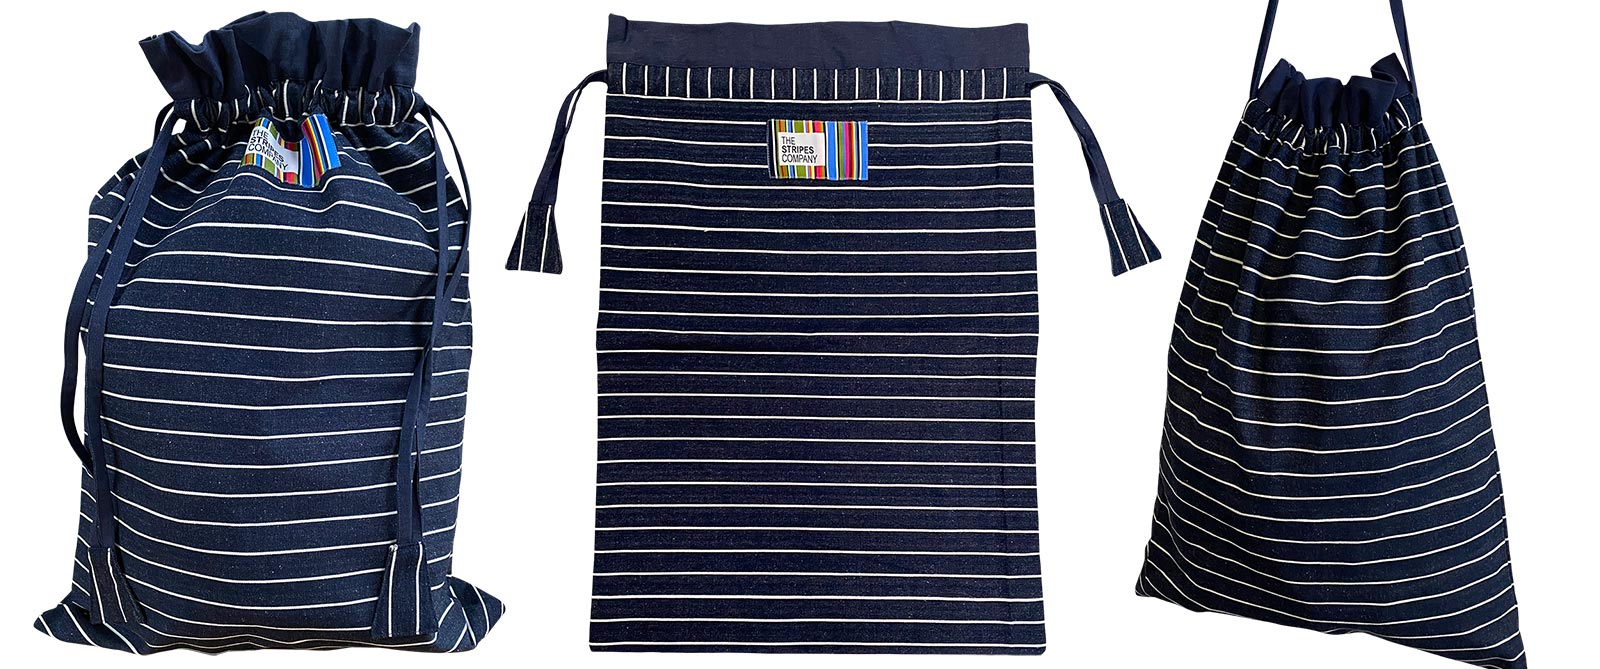 Striped Drawstring Bags | Kit Bags | Large Storage Bags | Laundry Bags